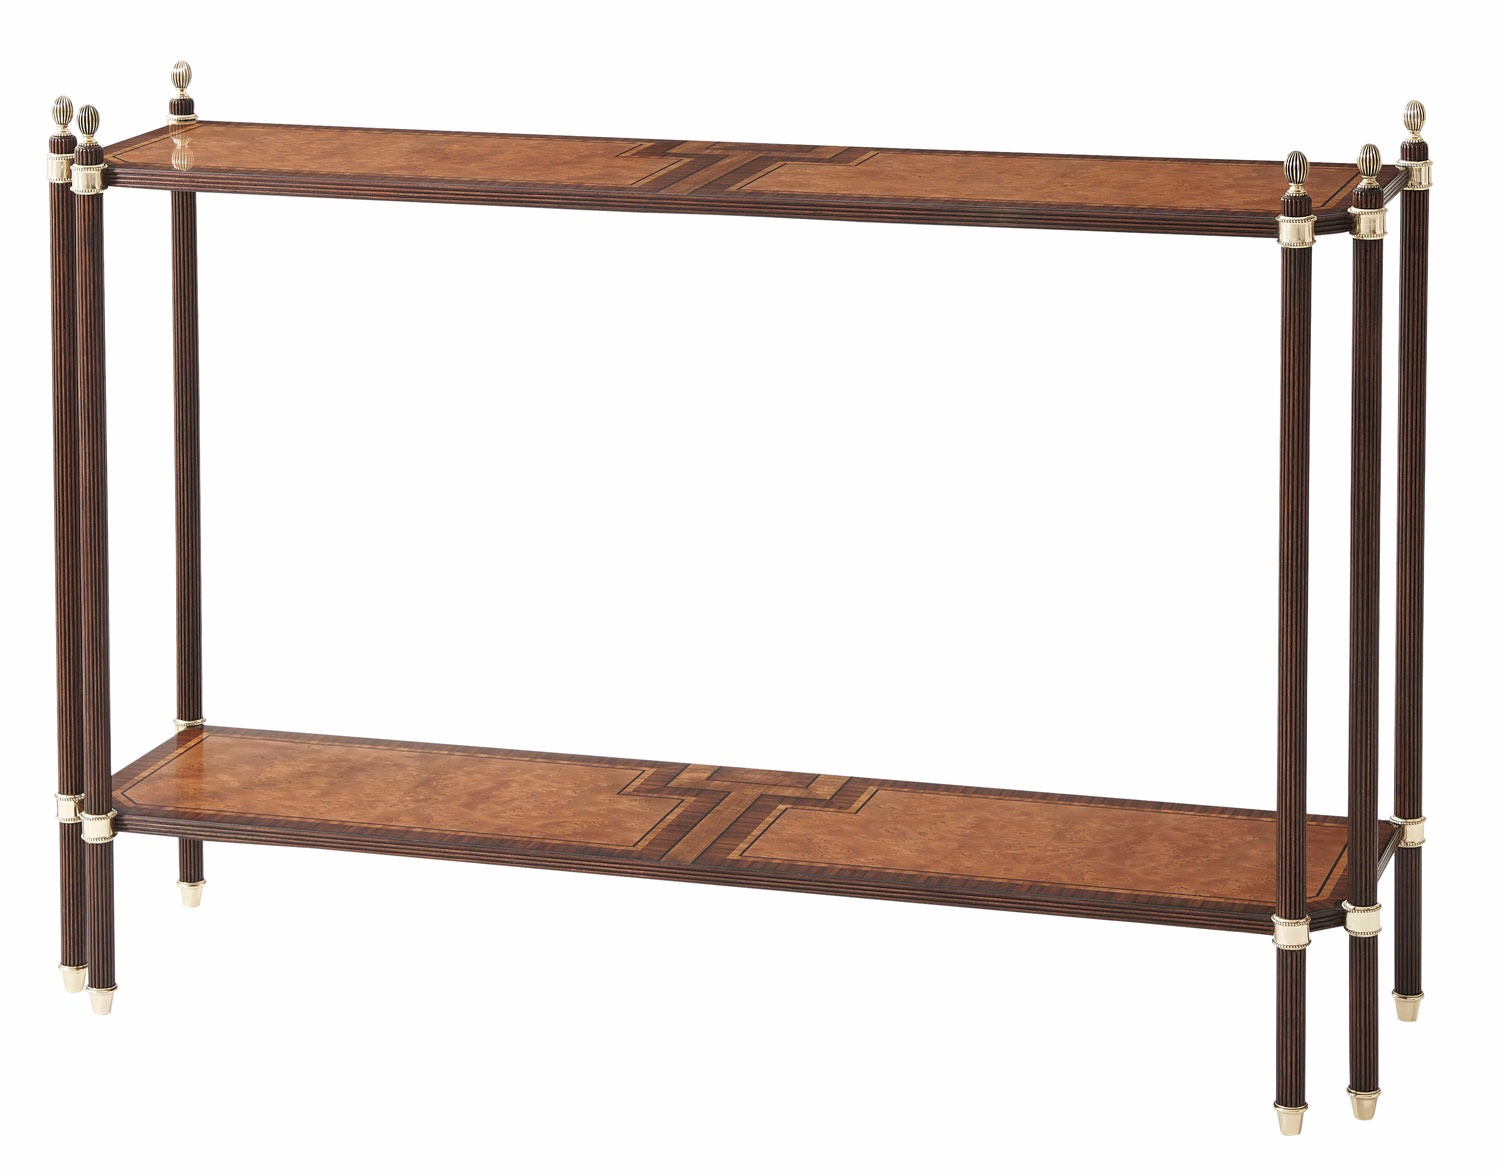 A finely parquetry veneered two tier console table